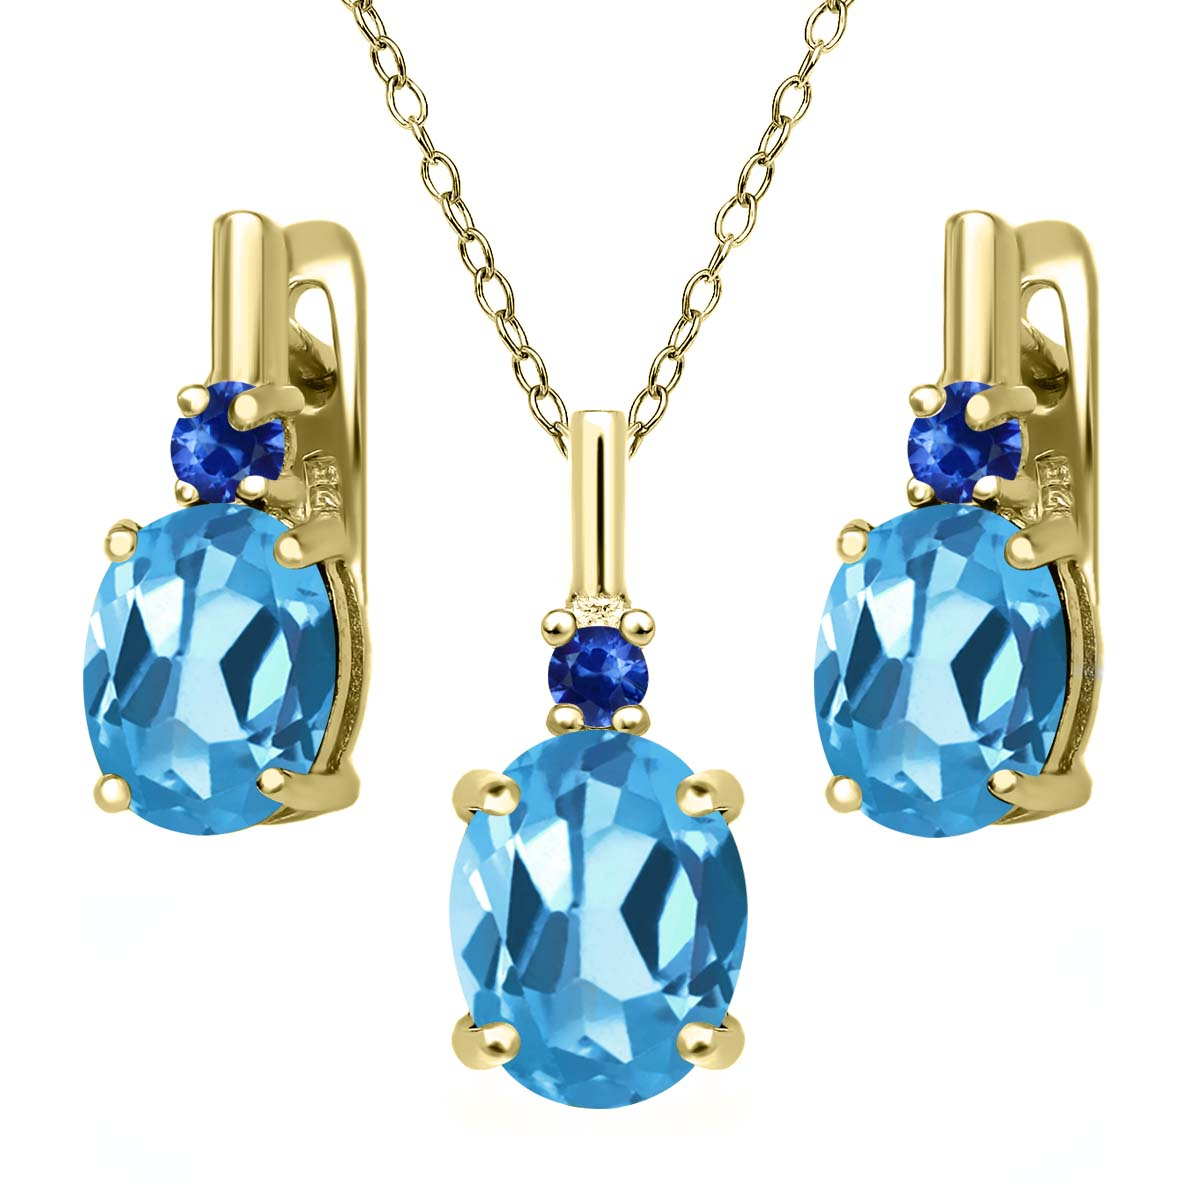 6.68 Ct Swiss Blue Topaz Blue Sapphire 18K Yellow Gold Plated Silver Pendant Earrings Set by